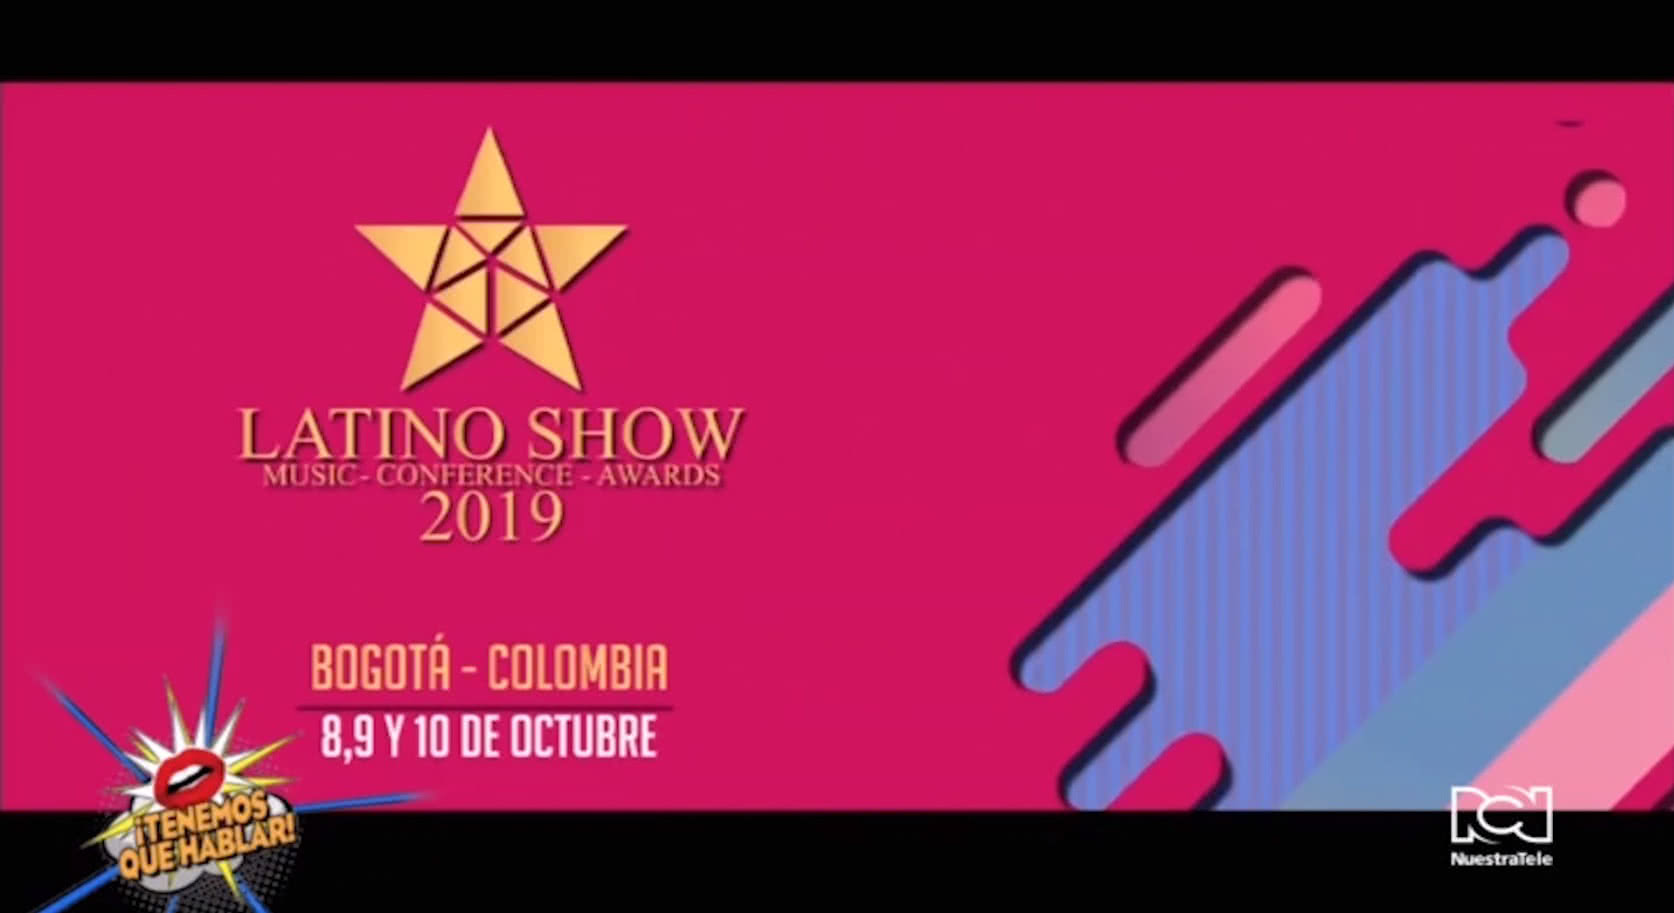 latino-show-conference-and-aeards-2019-colombia.jpg